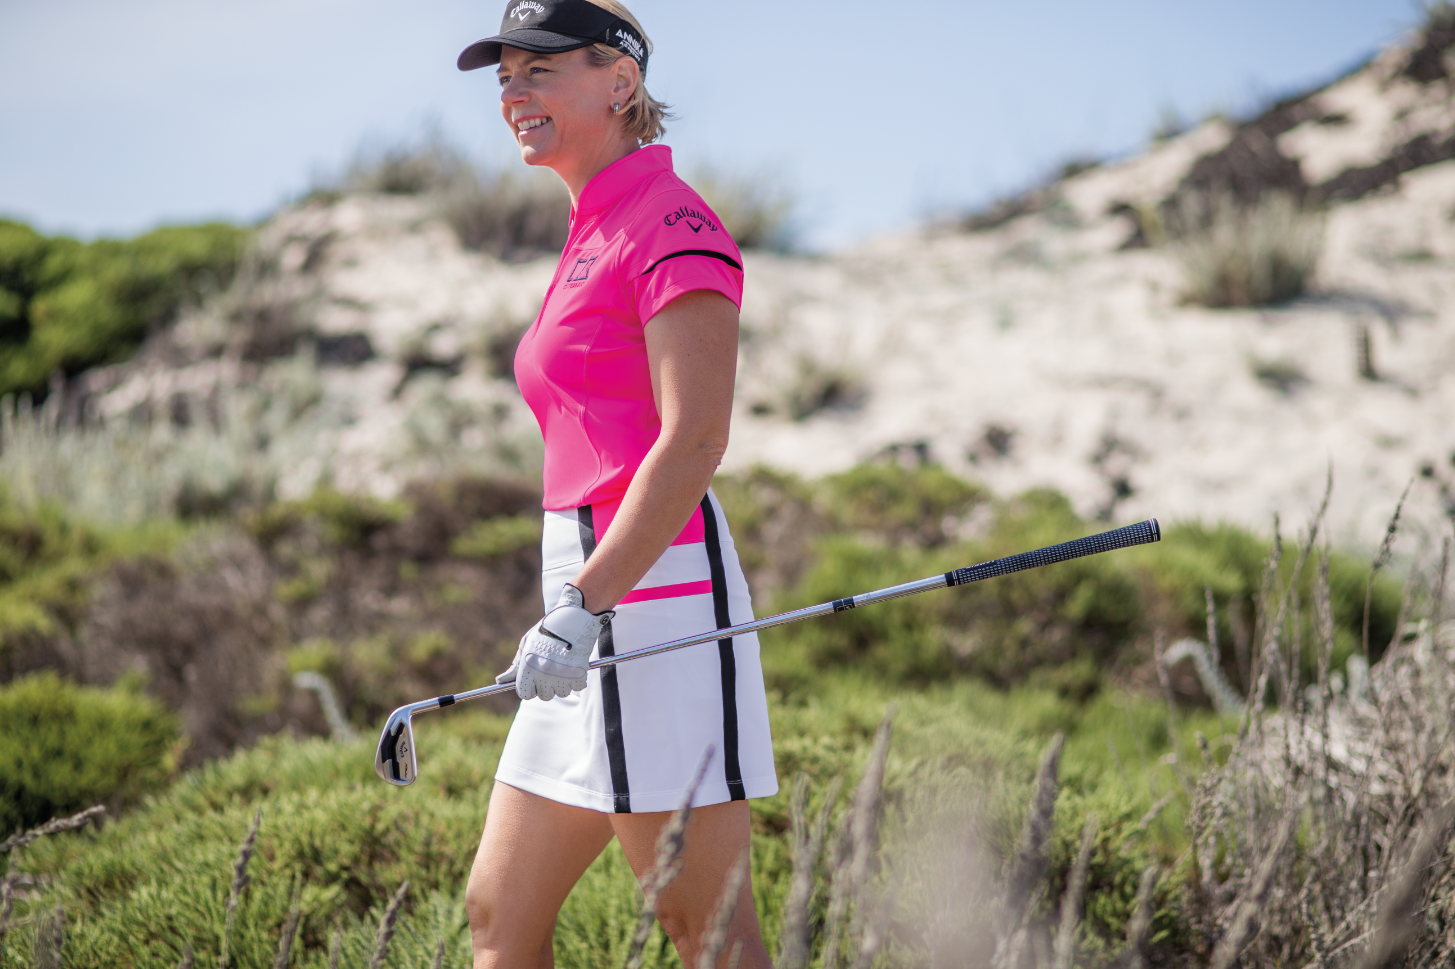 annika-sorenstam-globalgolf-blog-post